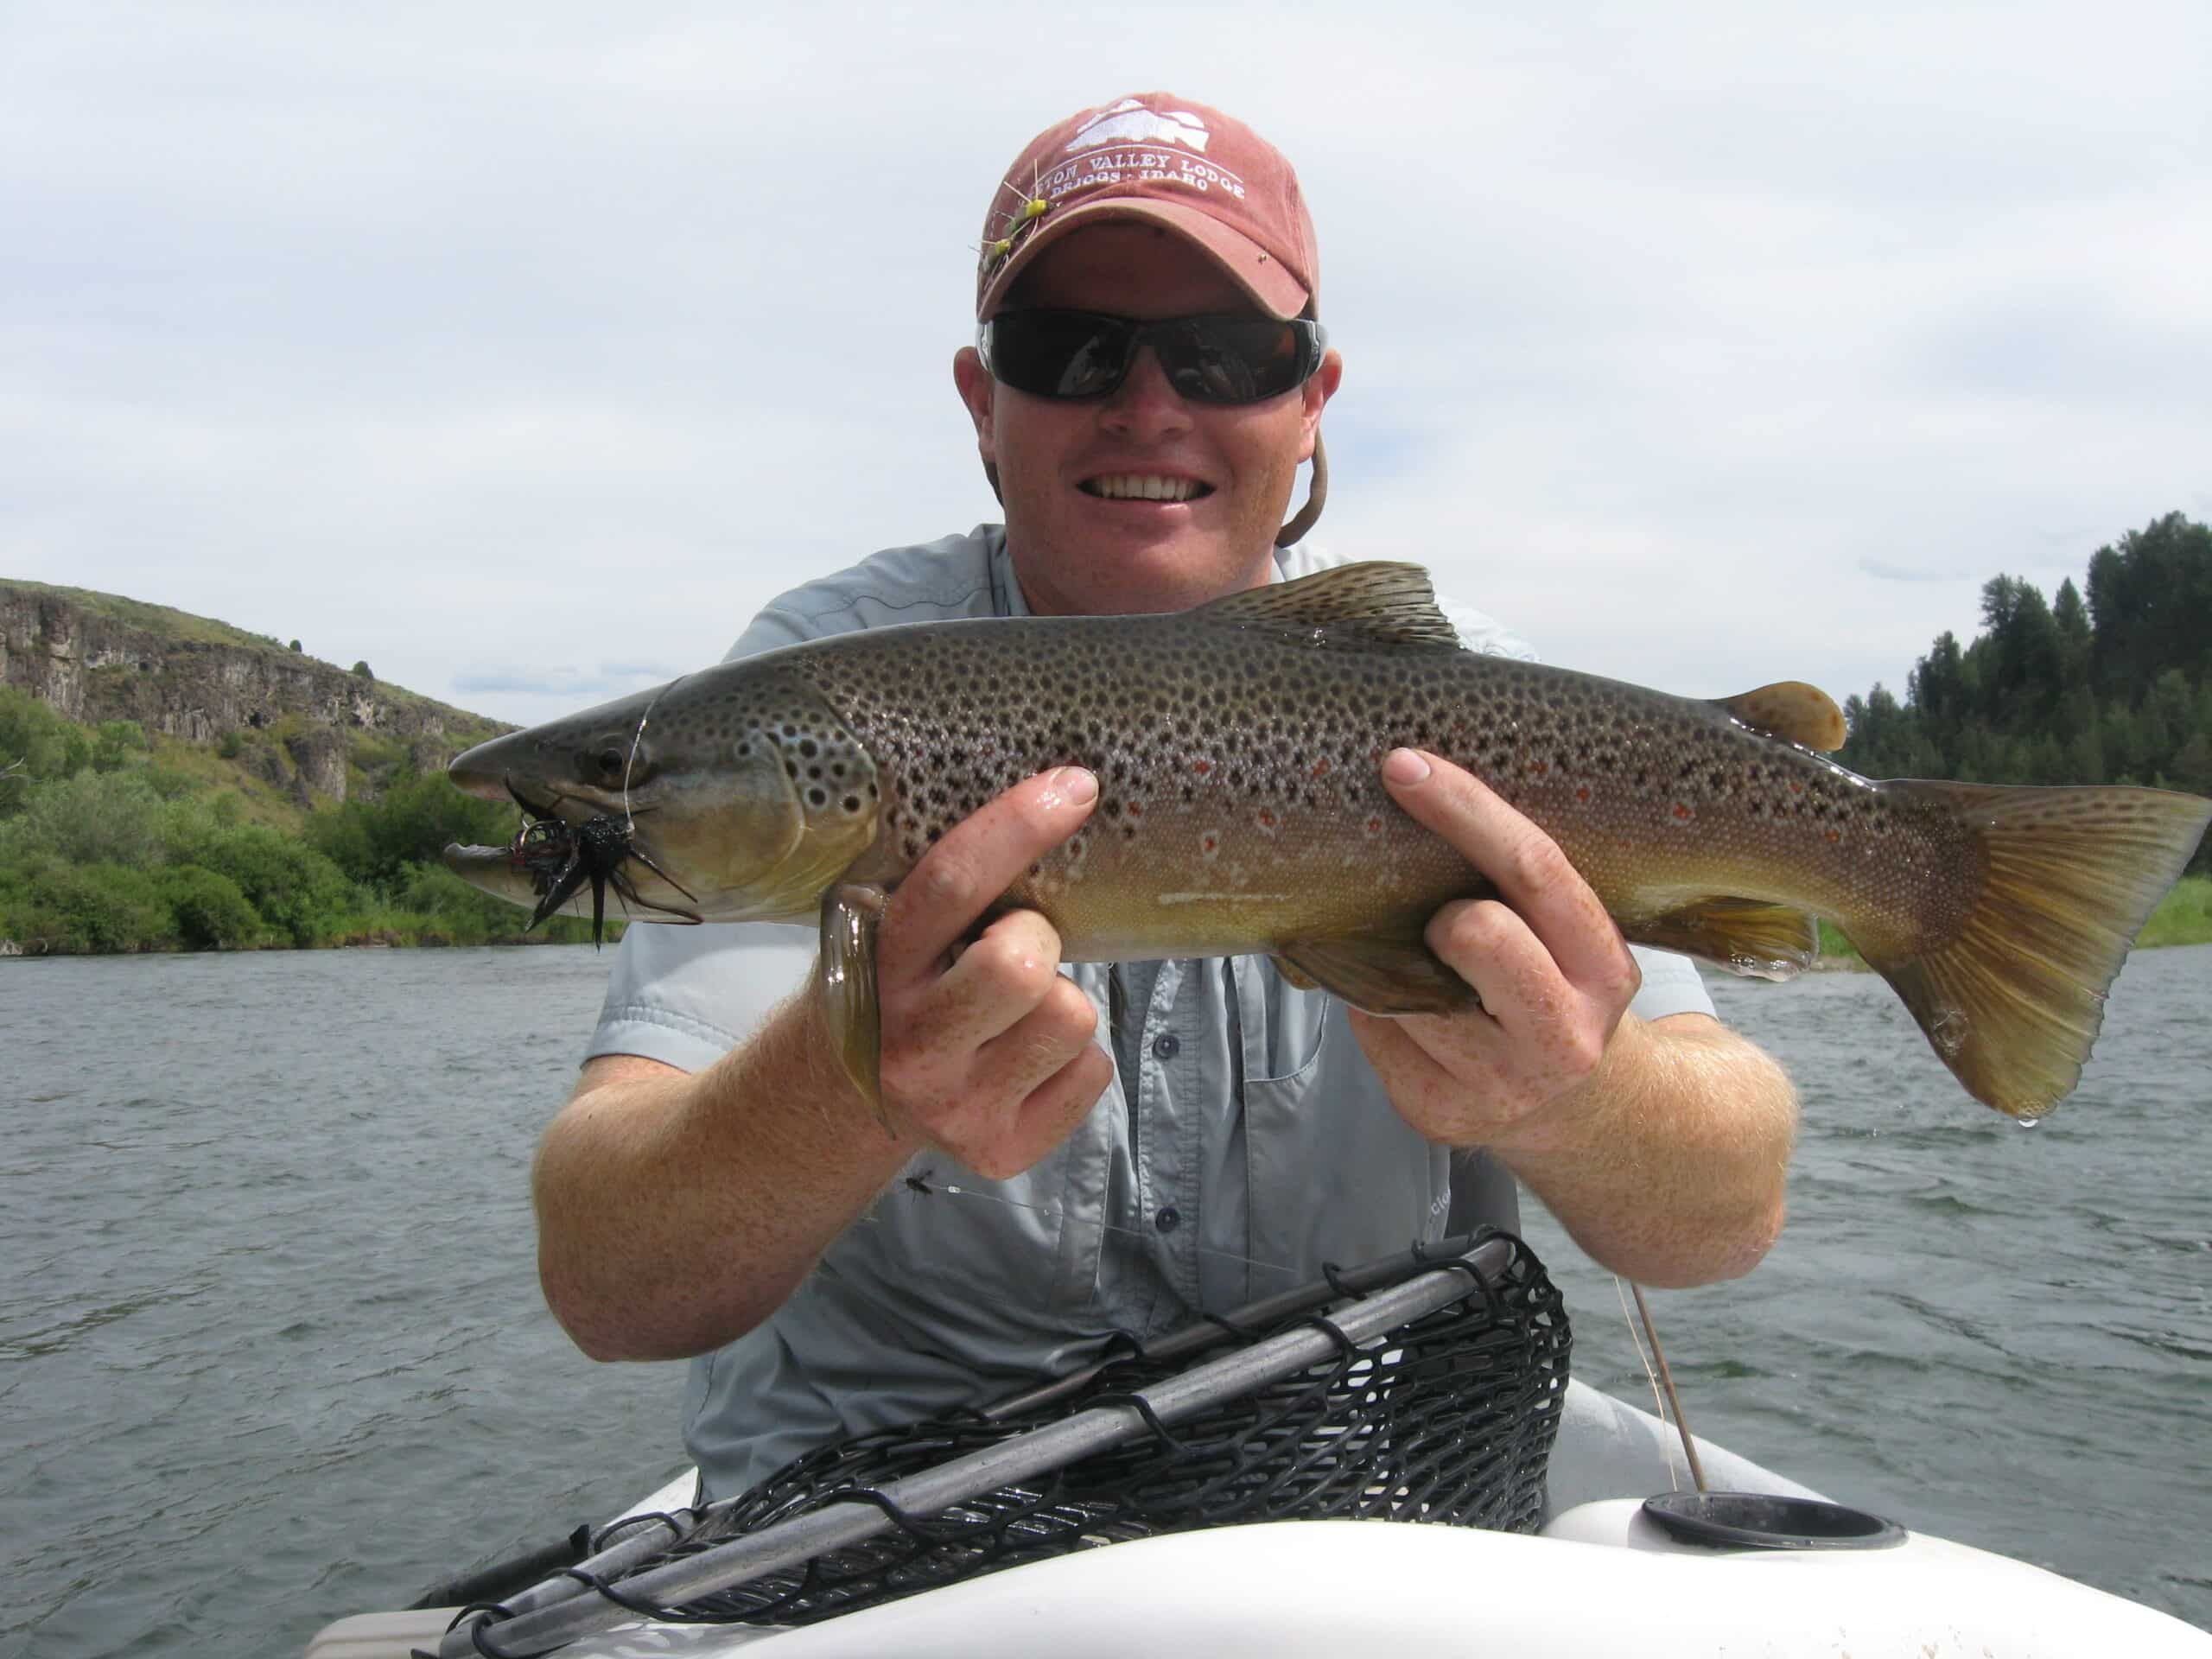 Dallin Owens hold a nice brown caught in the South Fork of the Snake River